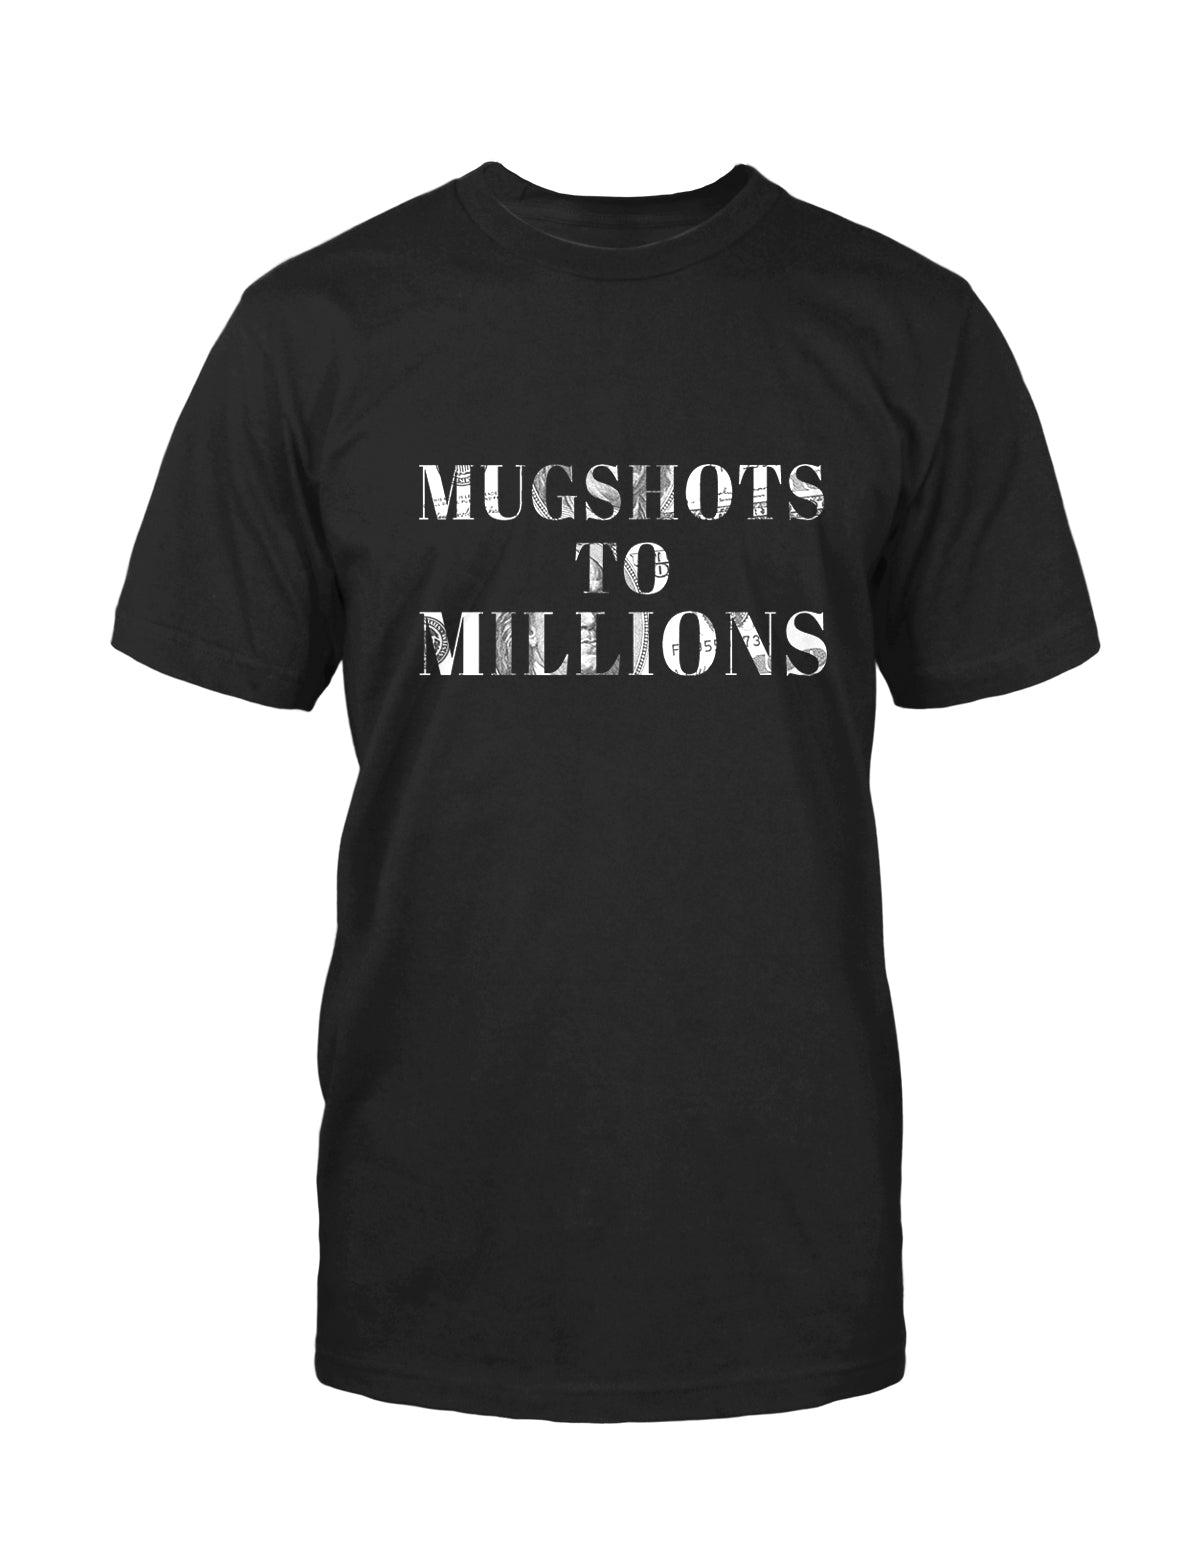 MUGSHOTS TO MILLIONS - Men's short sleeve tee